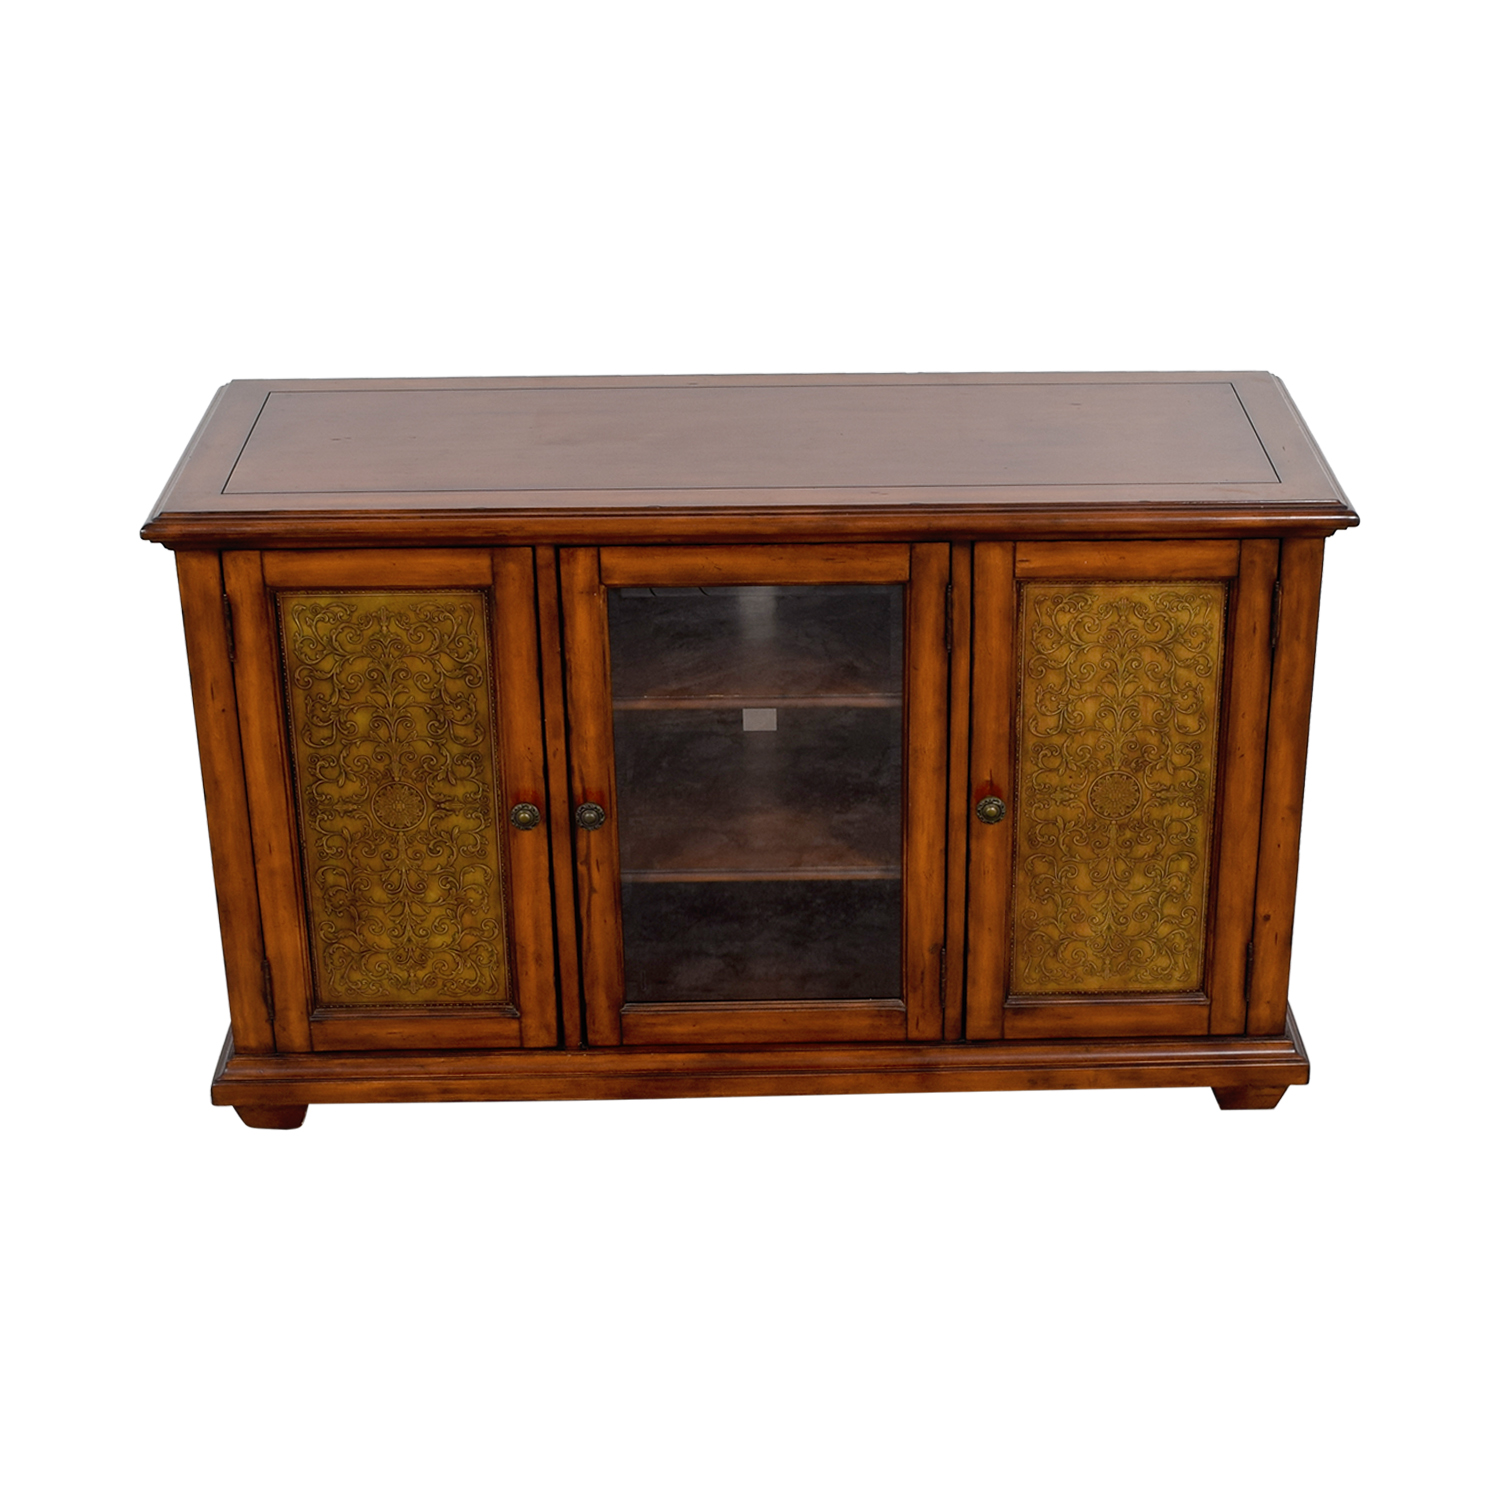 Hooker Furniture Hooker Furniture Media Console with Brass in Distressed Wood Finish Brown